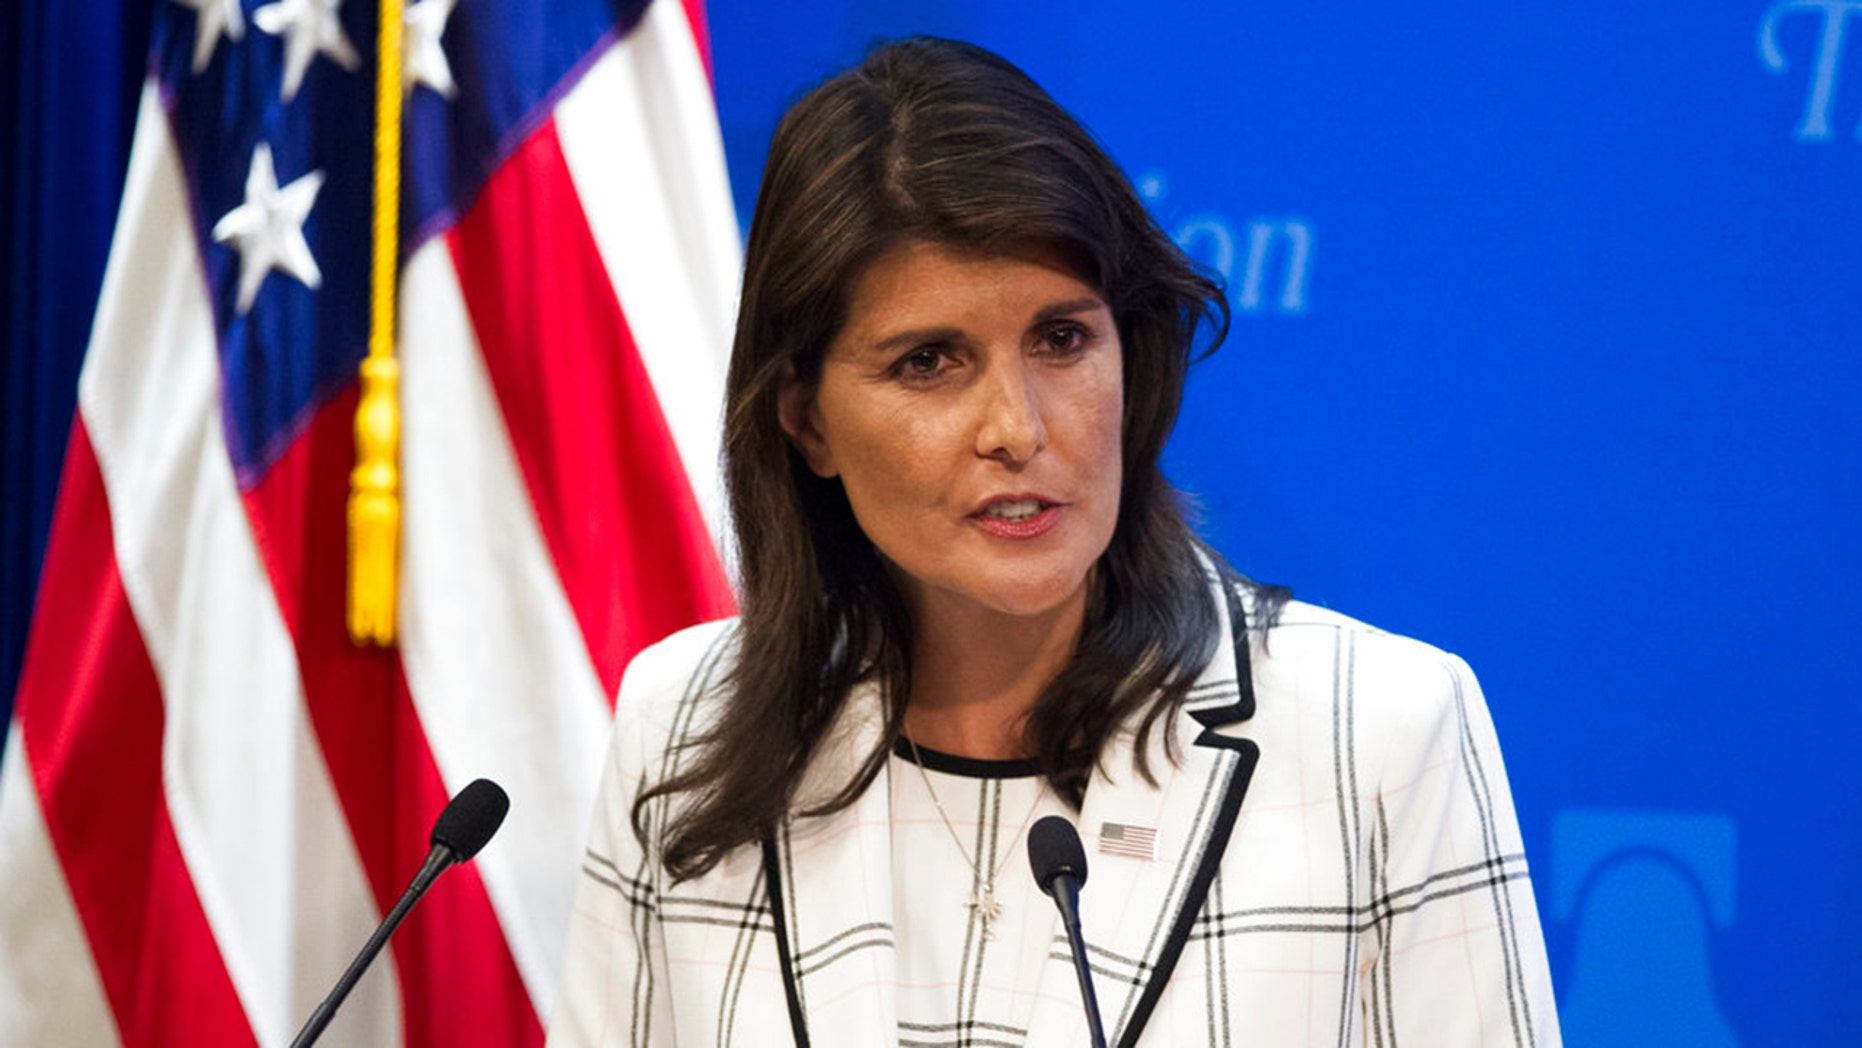 Ambassador Nikki Haley has ramped up U.S. rhetoric on anti-Israel bias at the U.N.